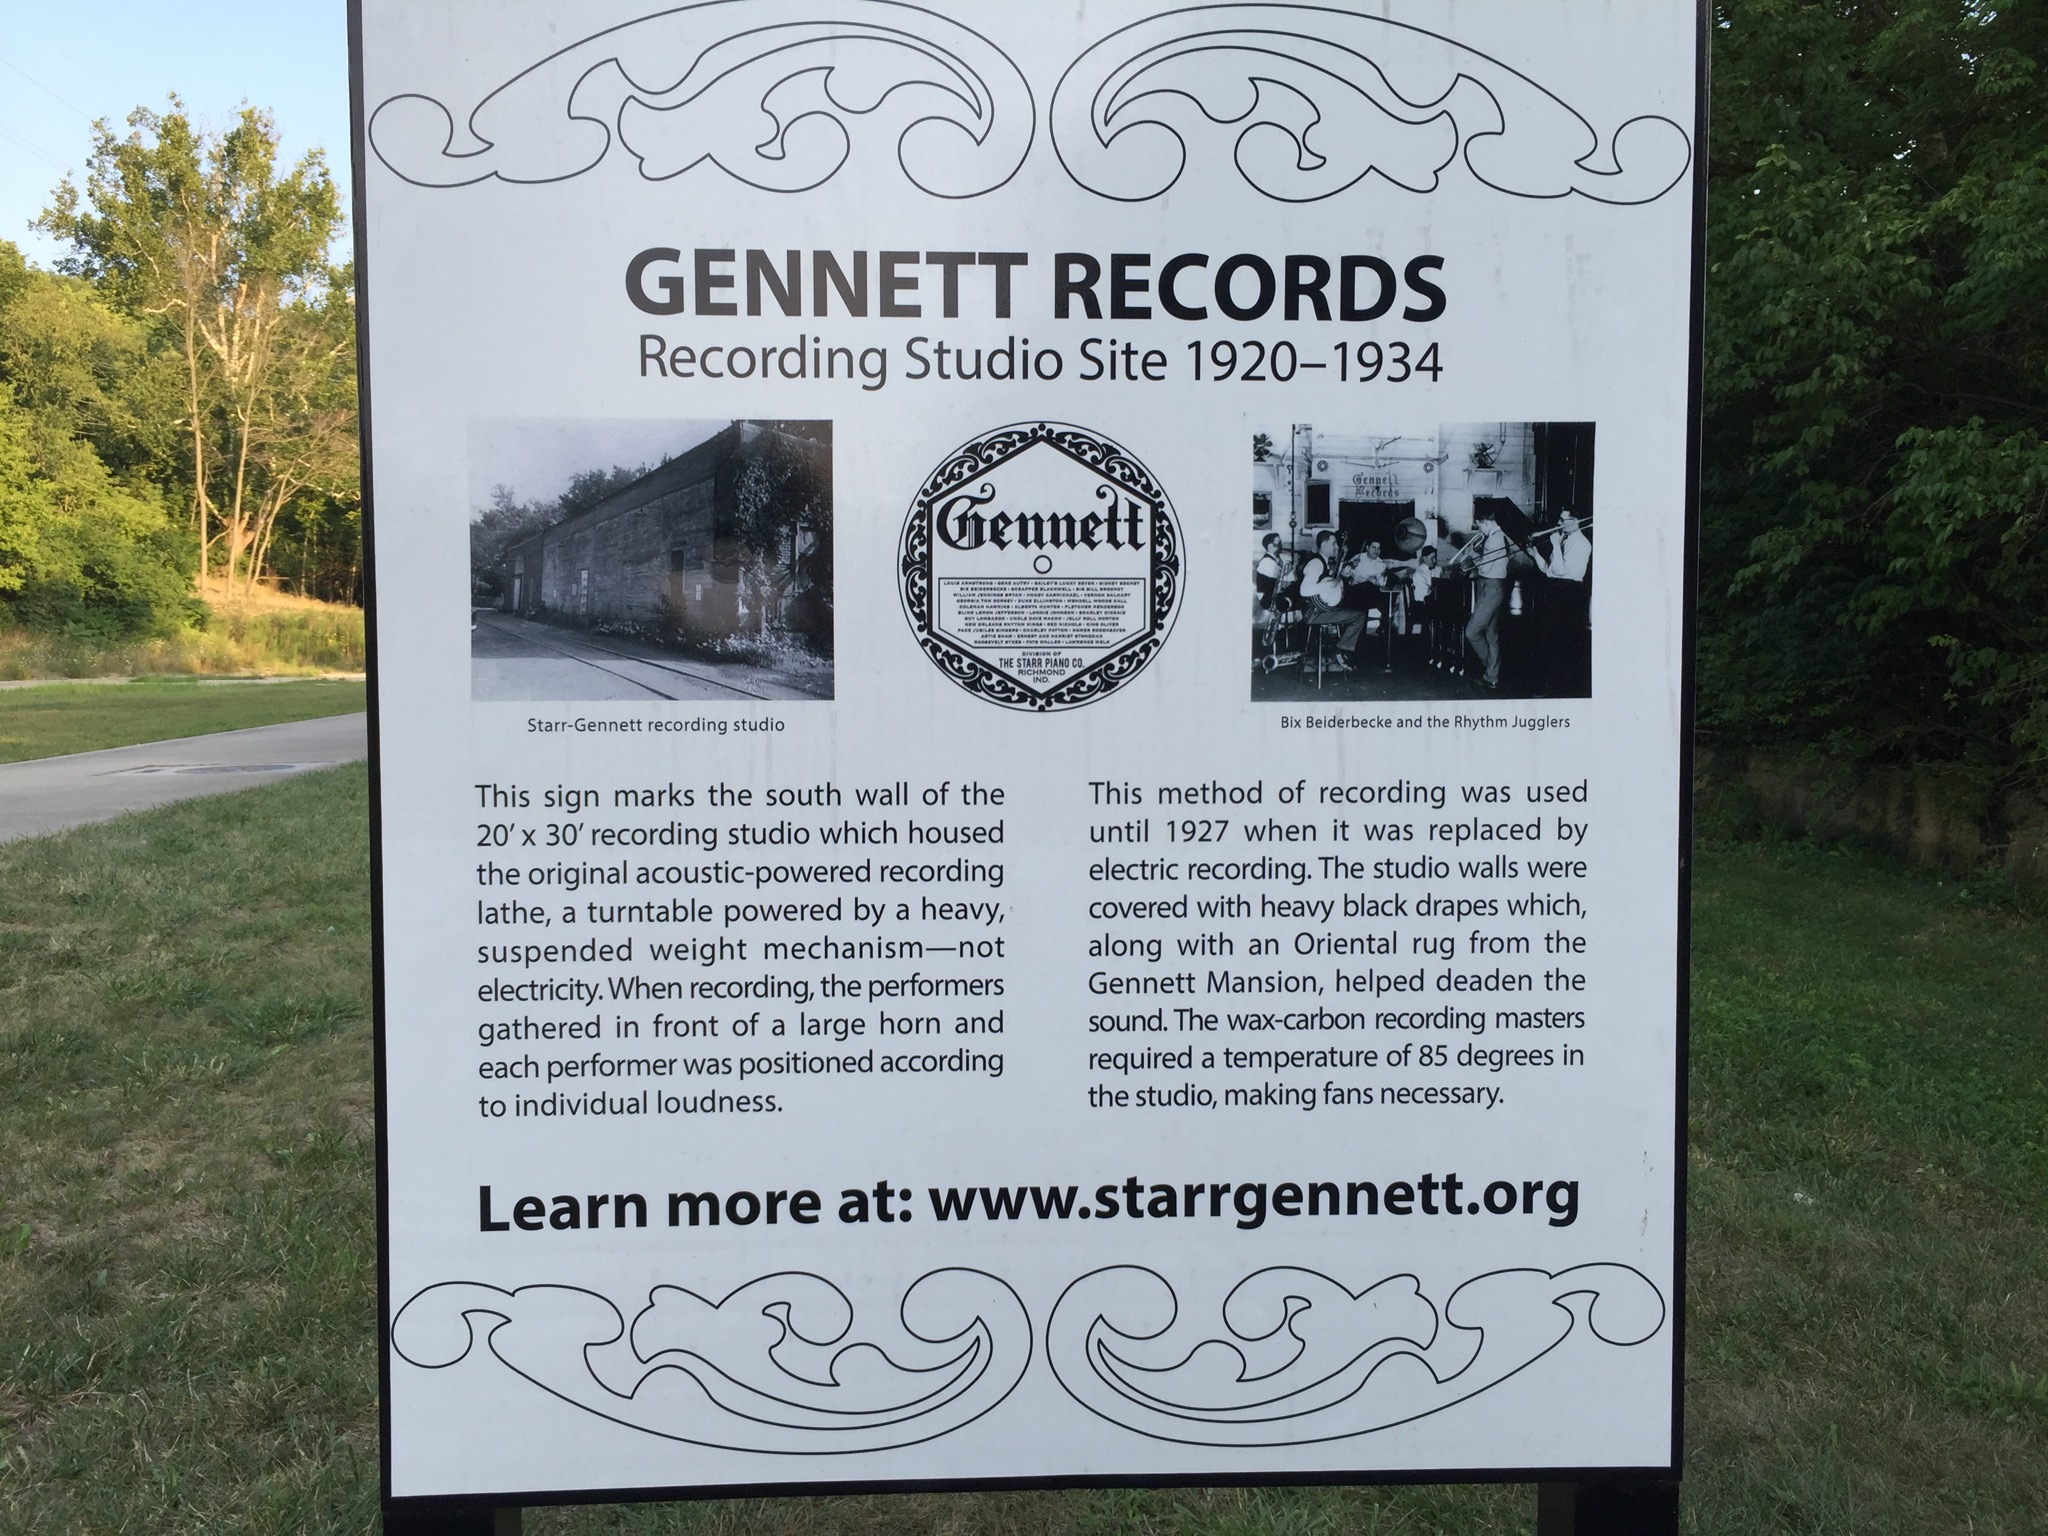 A sign marking the site of the old Gennett Recording Studio in Richmond, Indiana.  Photo taken by and the property of FourWalls.